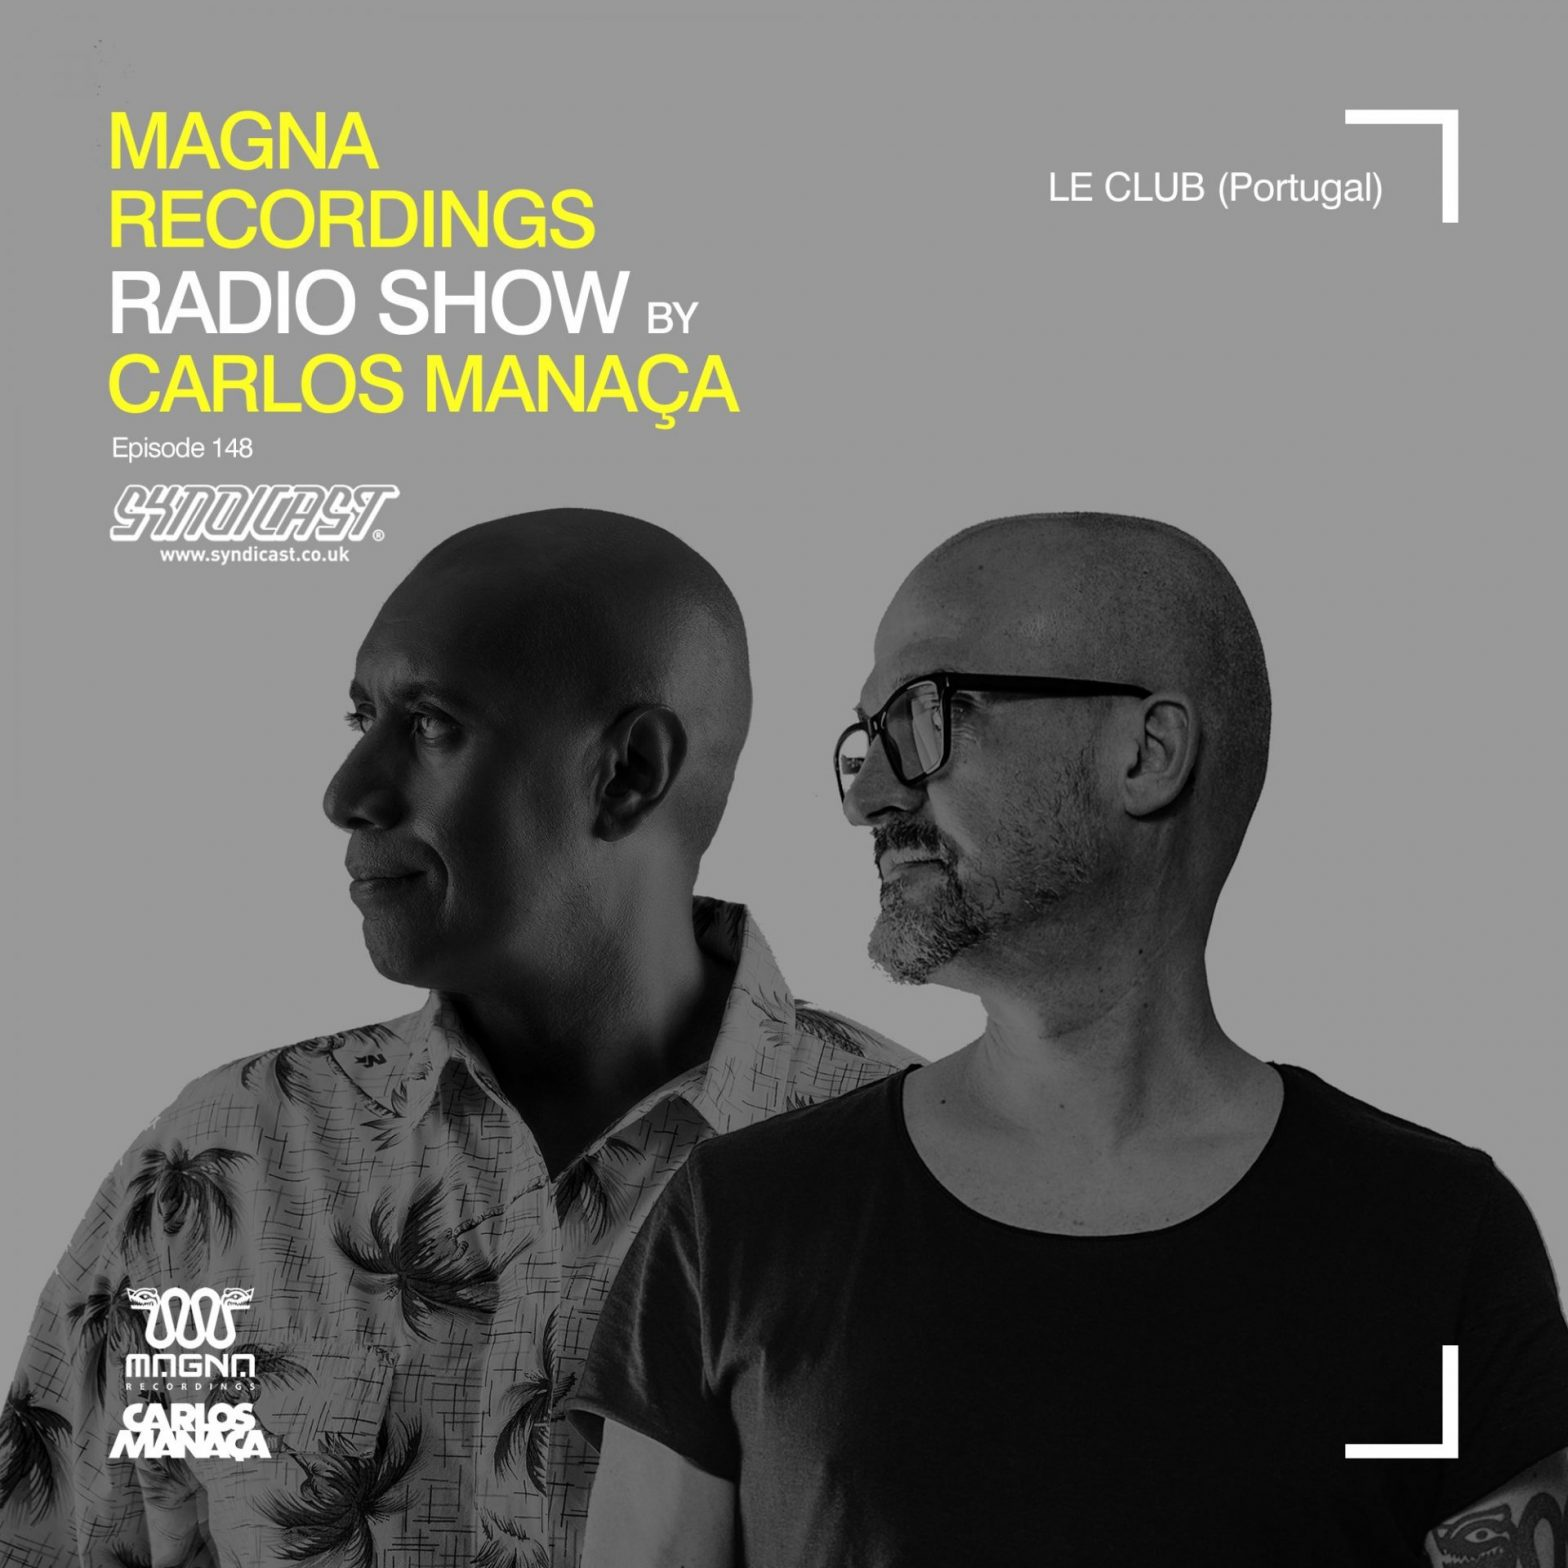 carlos_manaca_magna_recordings_radio_show_148_with_xl_garcia